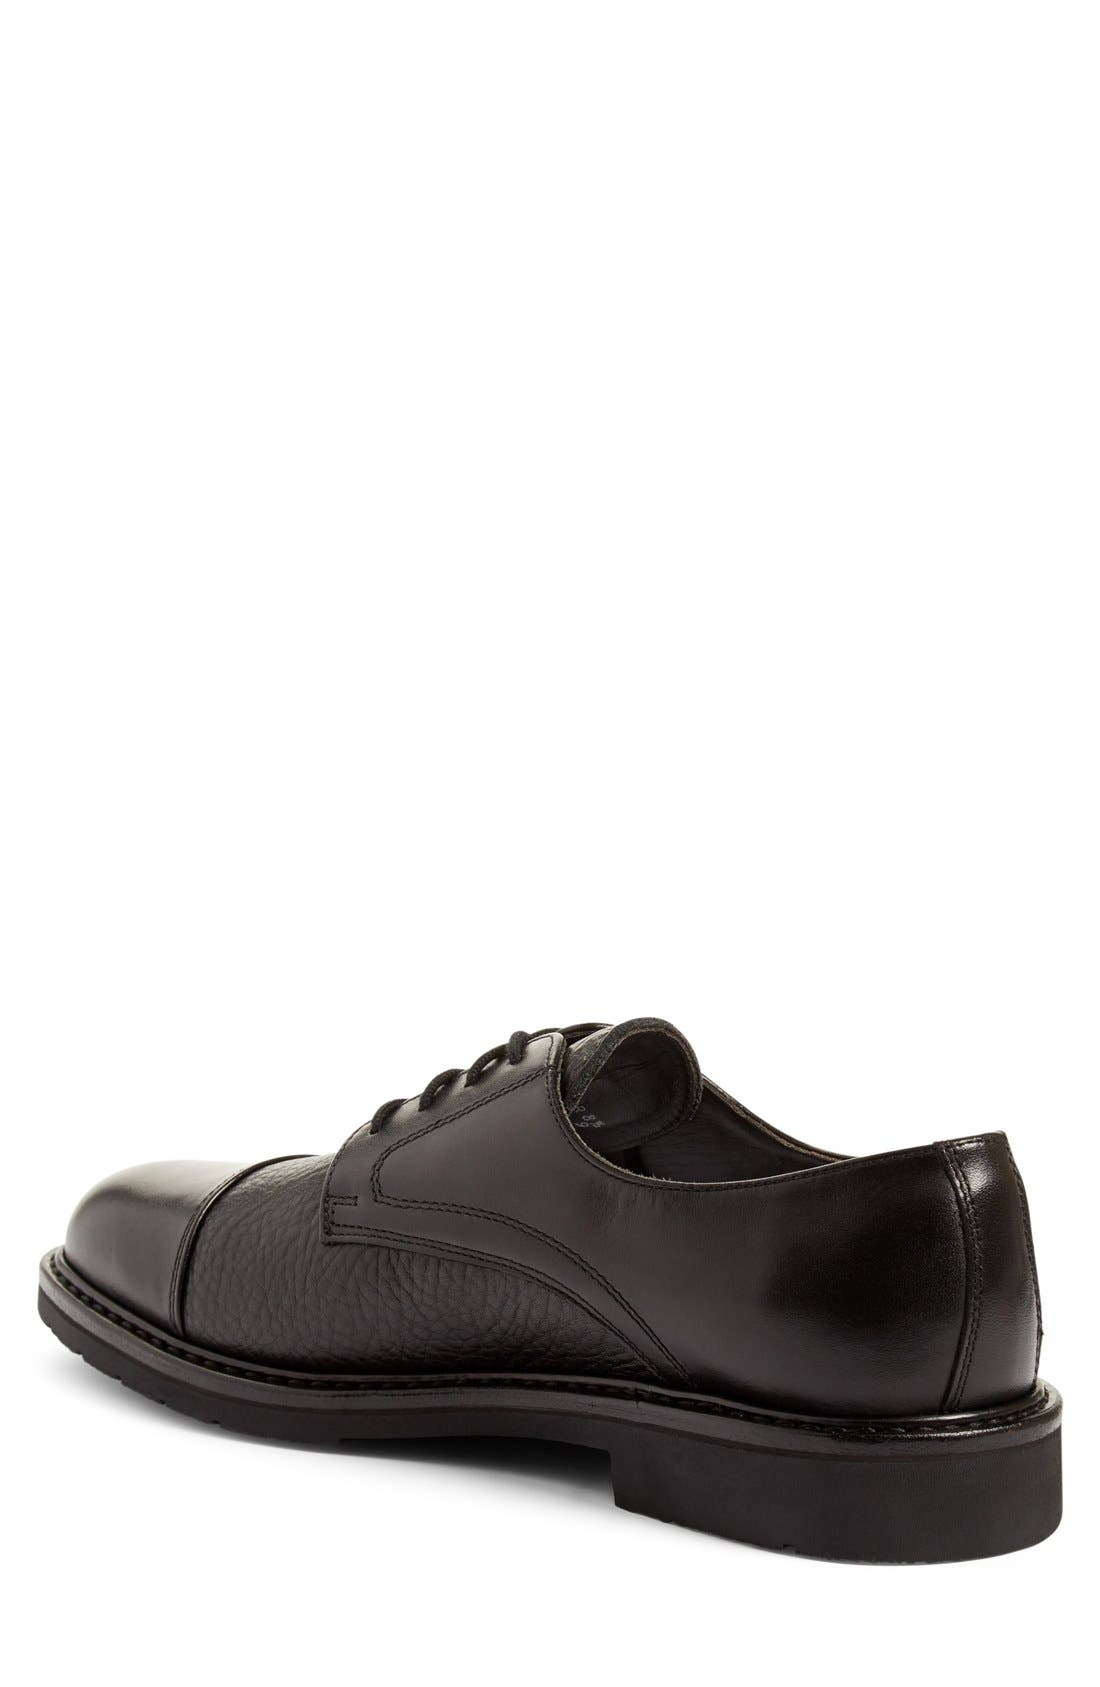 'Melchior' Cap Toe Derby,                             Alternate thumbnail 2, color,                             Black Leather